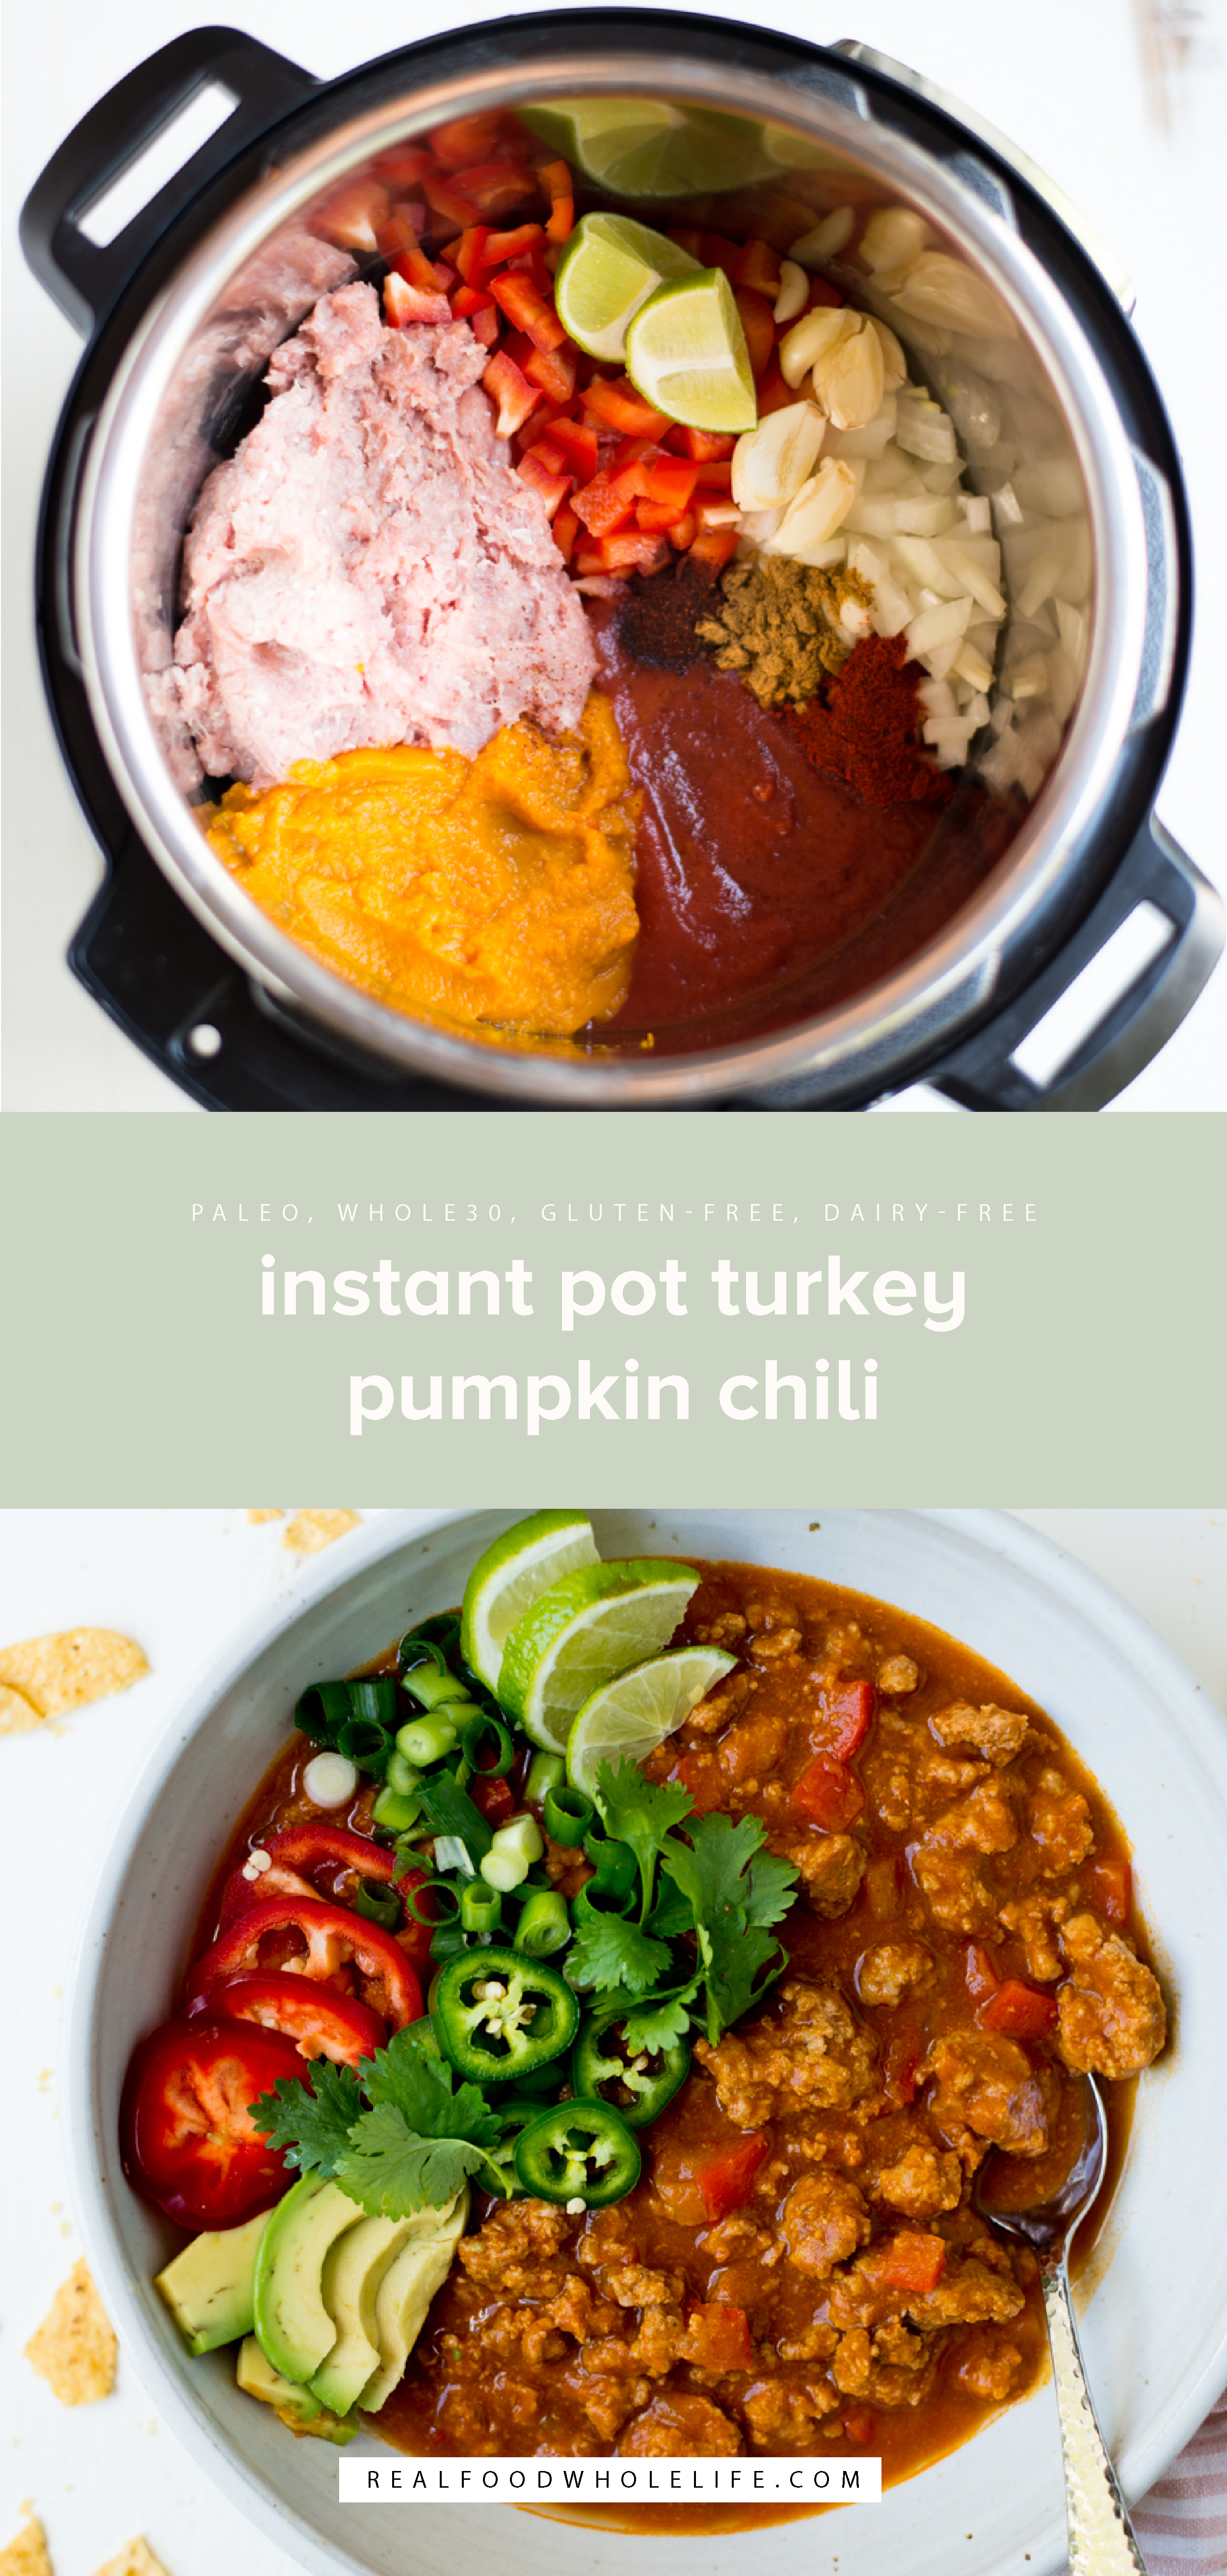 Instant Pot Turkey Pumpkin Chili is a simple, healthy one-pot meal that can be prepared in a matter of minutes. A gluten-free, dairy-free, paleo, whole30 recipe. #realfoodwholelife #realfoodwholeliferecipe #recipe #mealprep #whole30 #whole30recipe #paleo #paleorecipe #glutenfree #dairyfree #healthy #healthyrecipe #easyrecipe #quickrecipe #lunch #mayofree #nutfree #eggfree